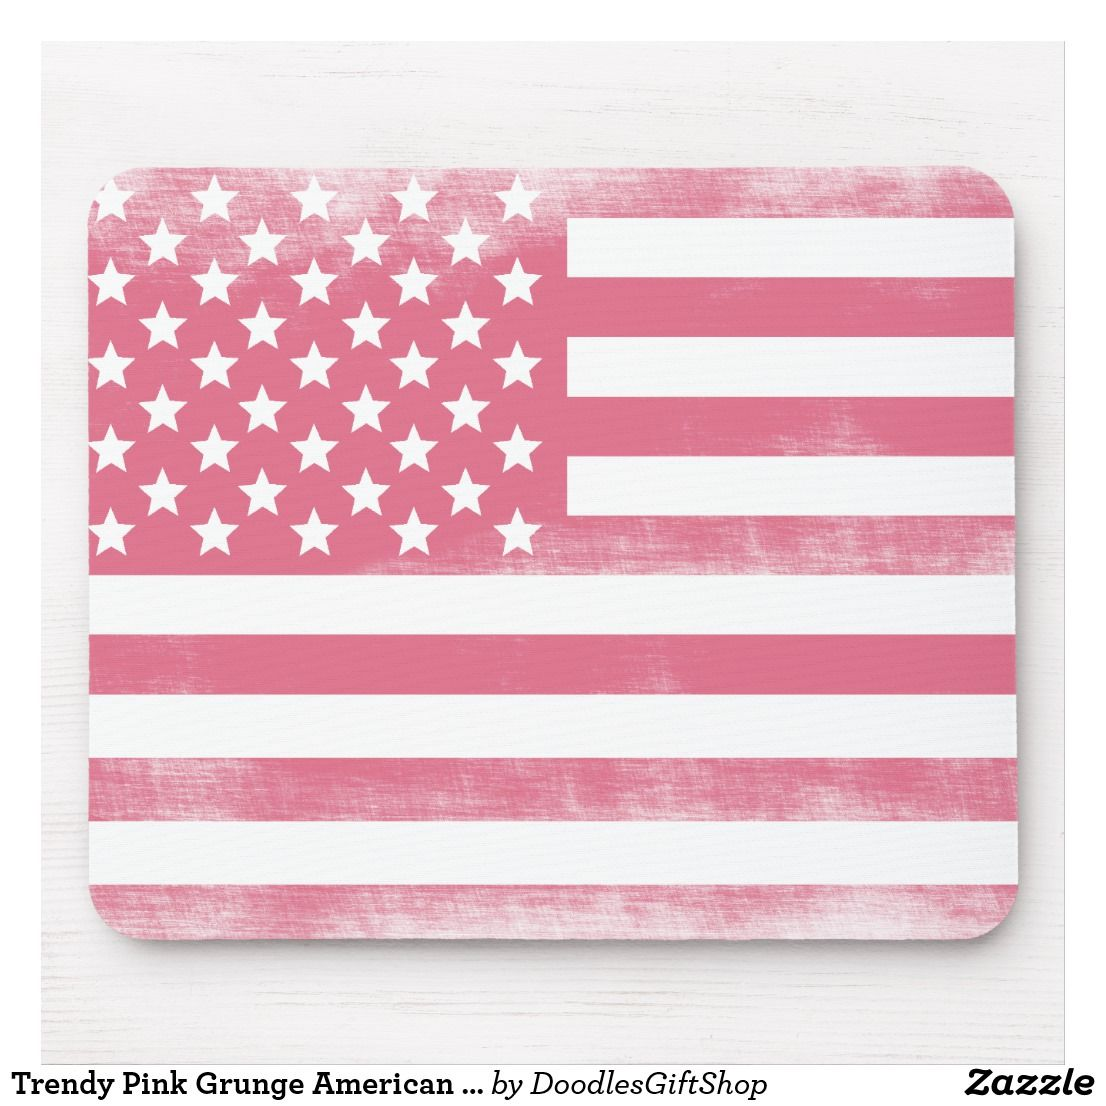 Trendy Pink Grunge American Flag Mouse Pad Zazzle Com In 2020 Pink Flag Pink Aesthetic